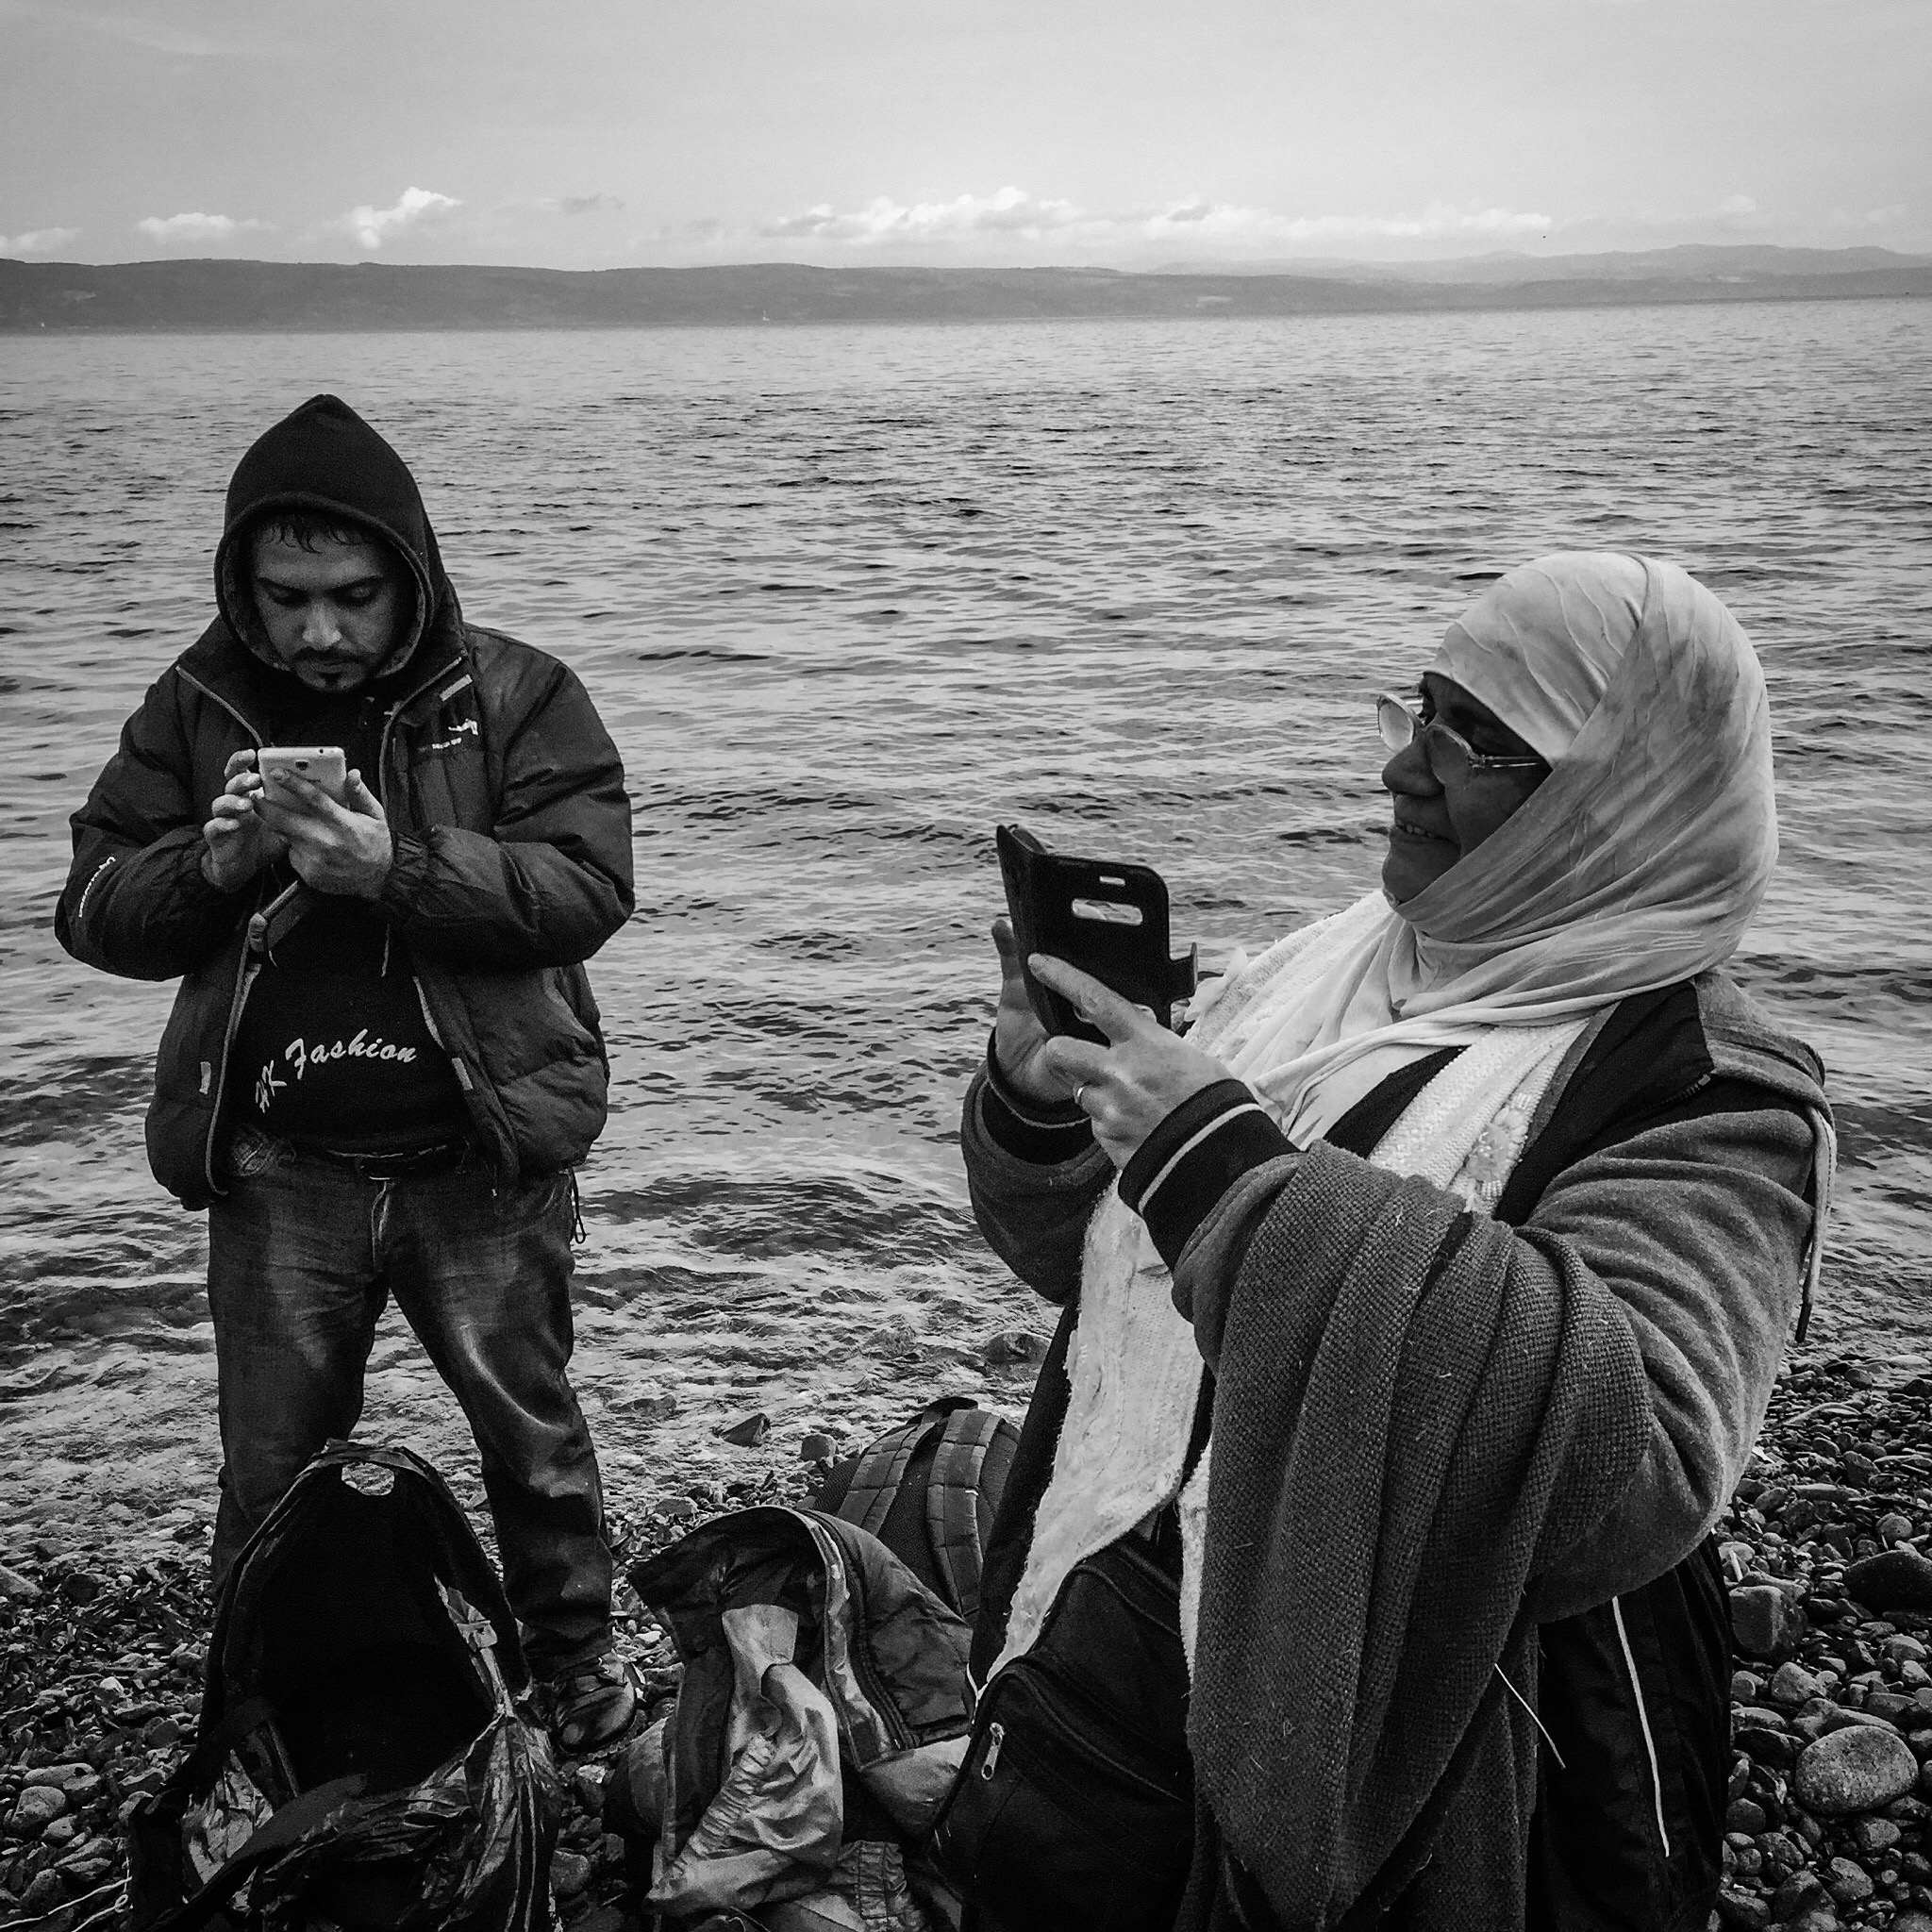 Refugees take photos and send messages on their cellphones after arriving on the island of Lesbos in Greece.